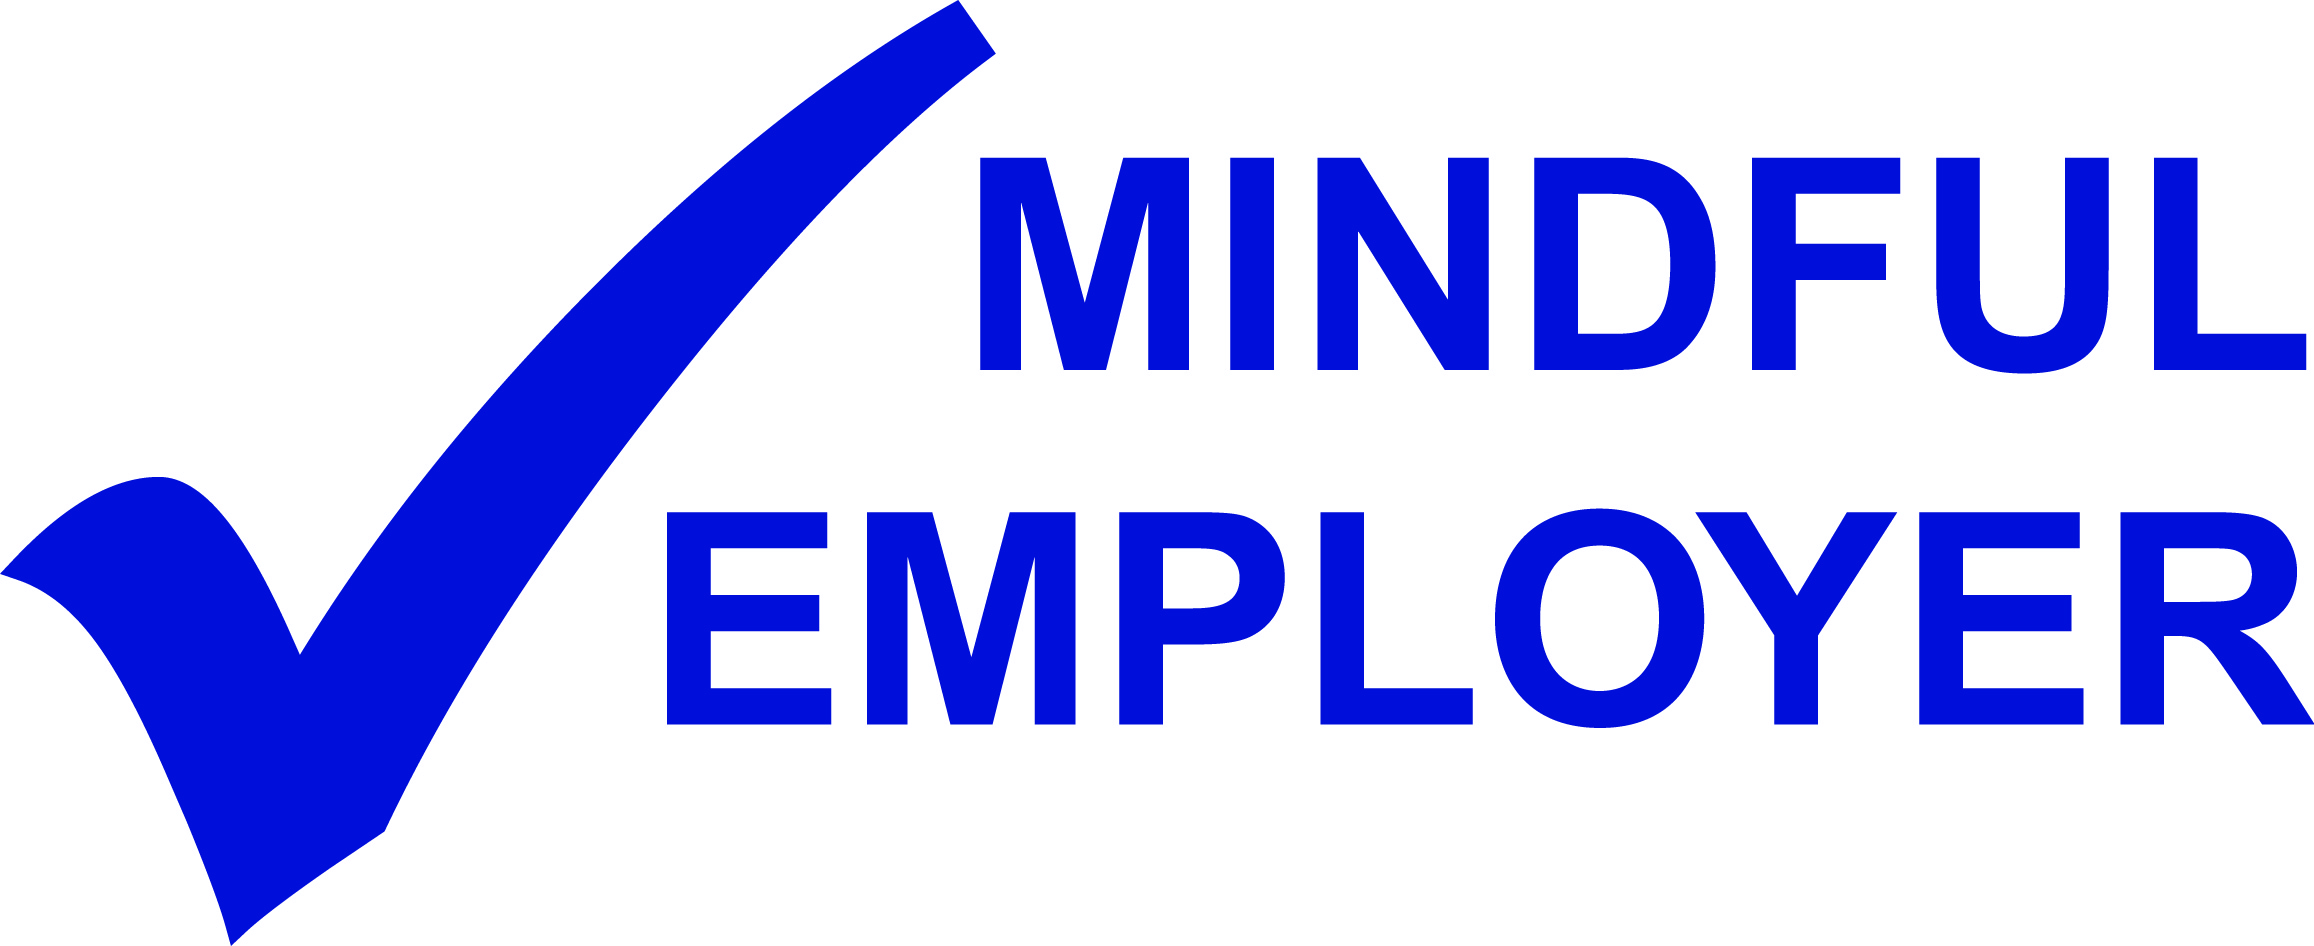 Minful Employer logo